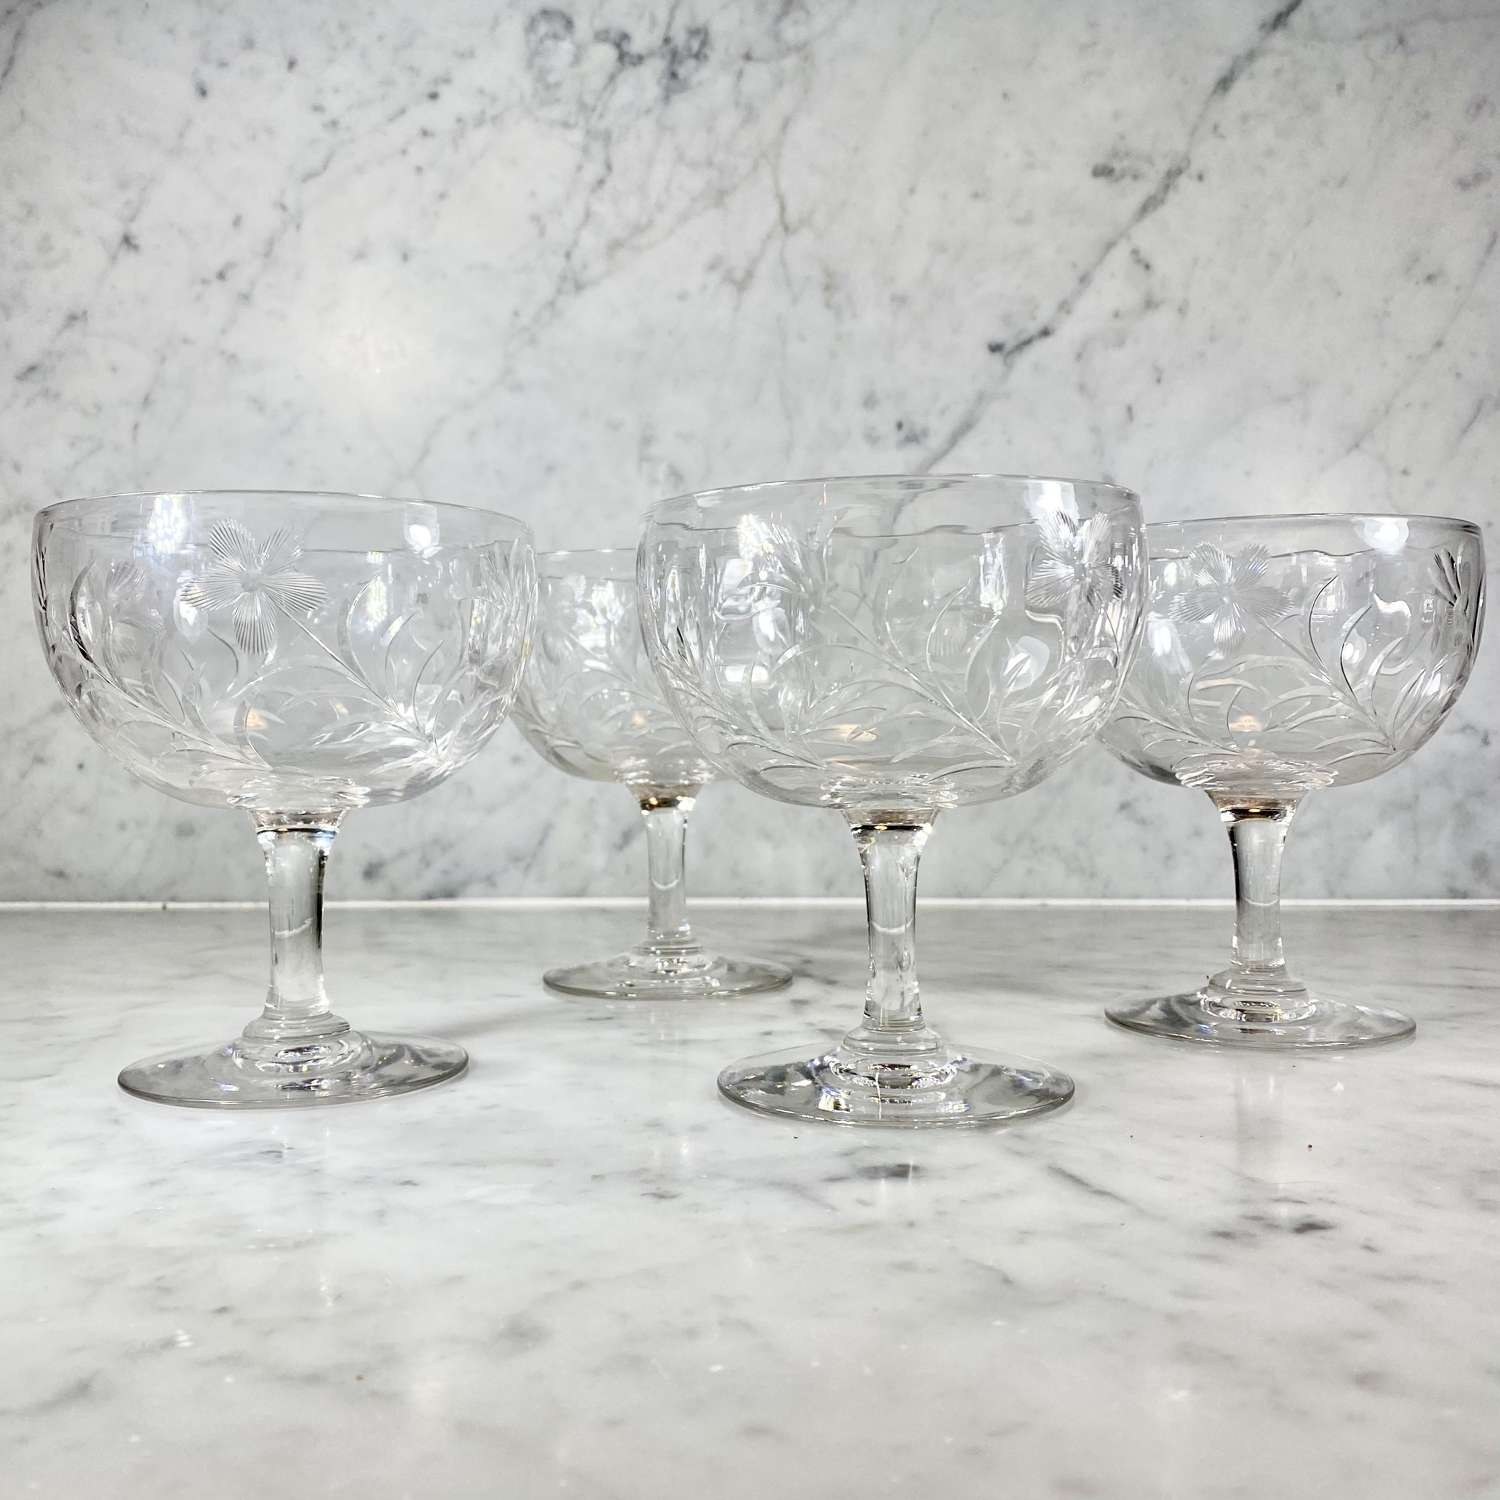 Extremely rare 19th century cut glass gin balloon Rummers